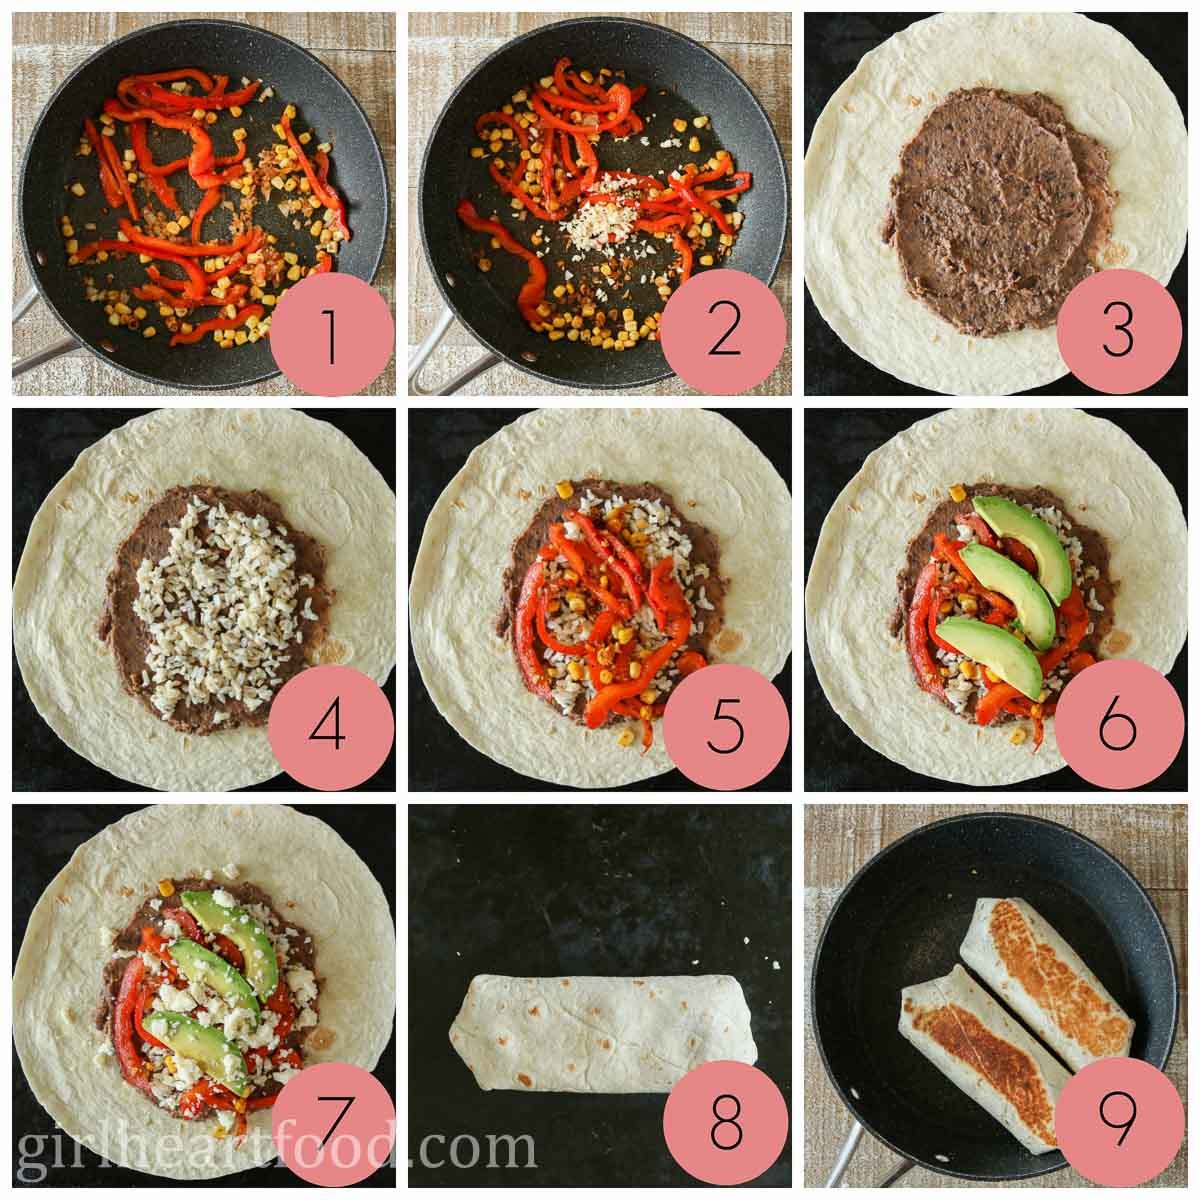 Collage of how to make a vegetarian burrito with refried beans, veggies, avocado and cheese.